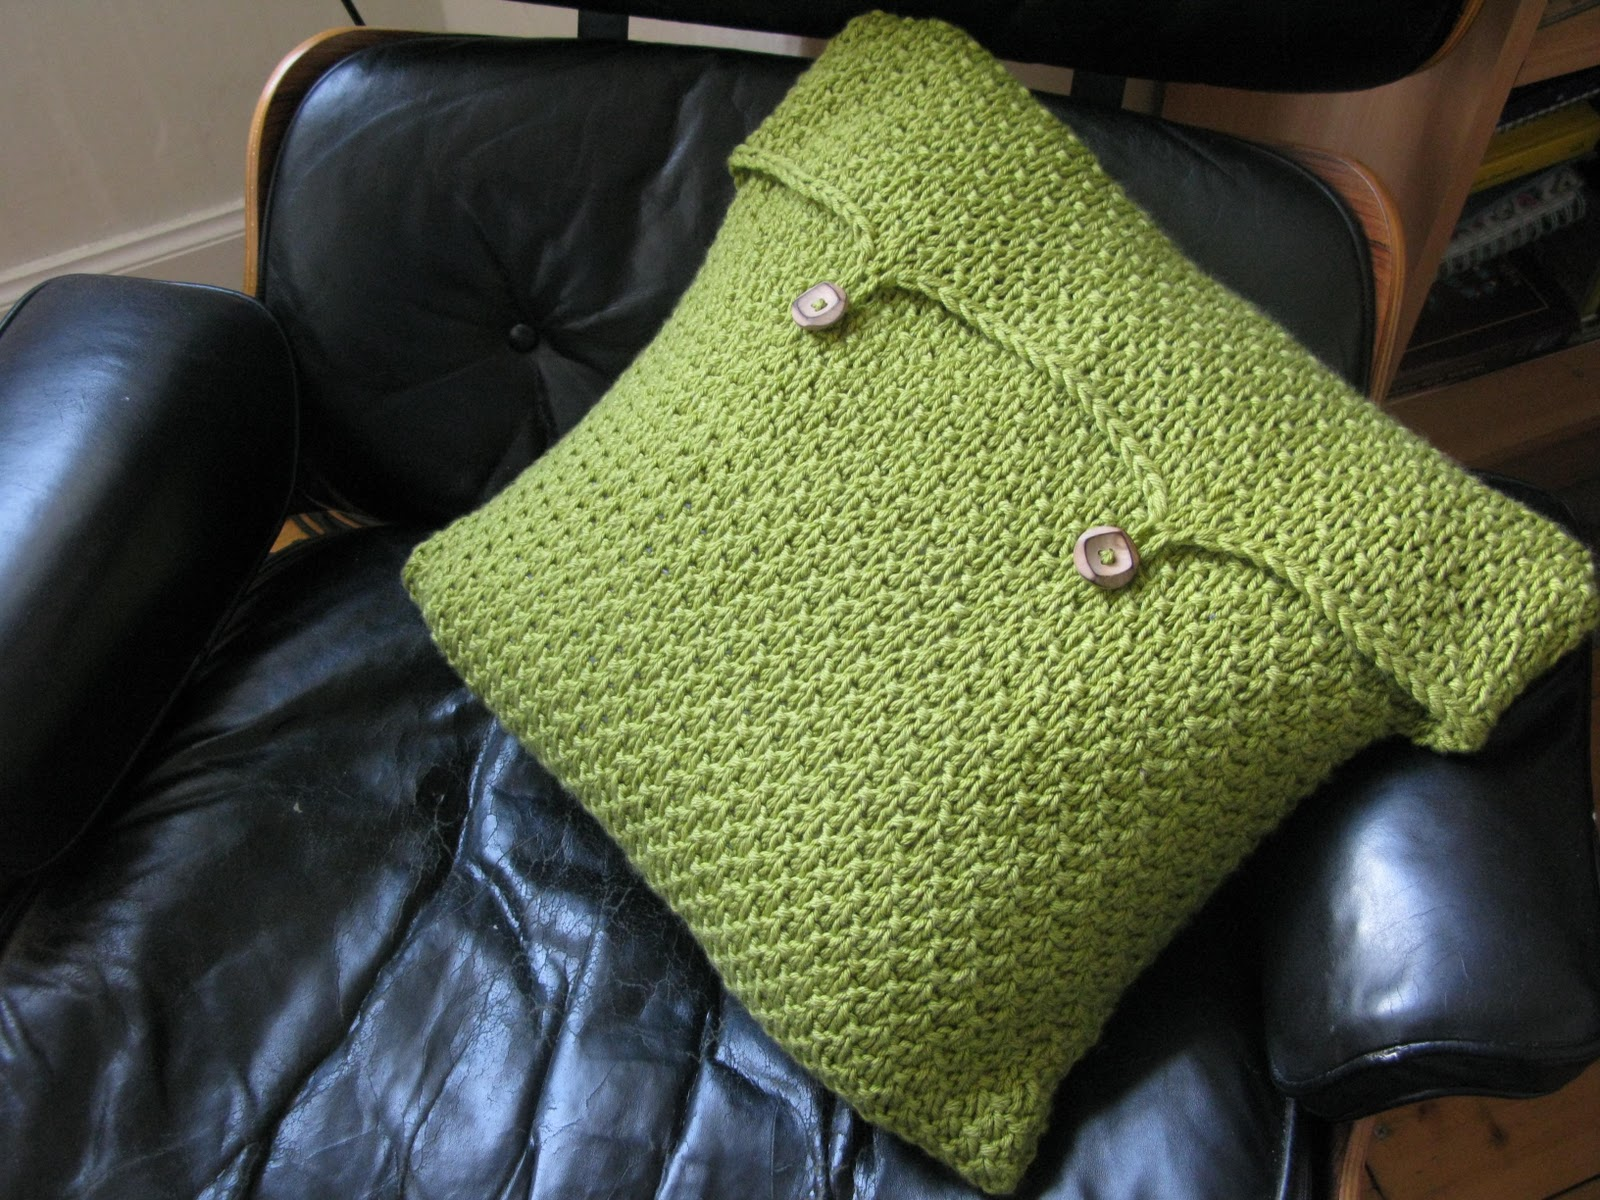 littletheorem: Pea Soup Cushion